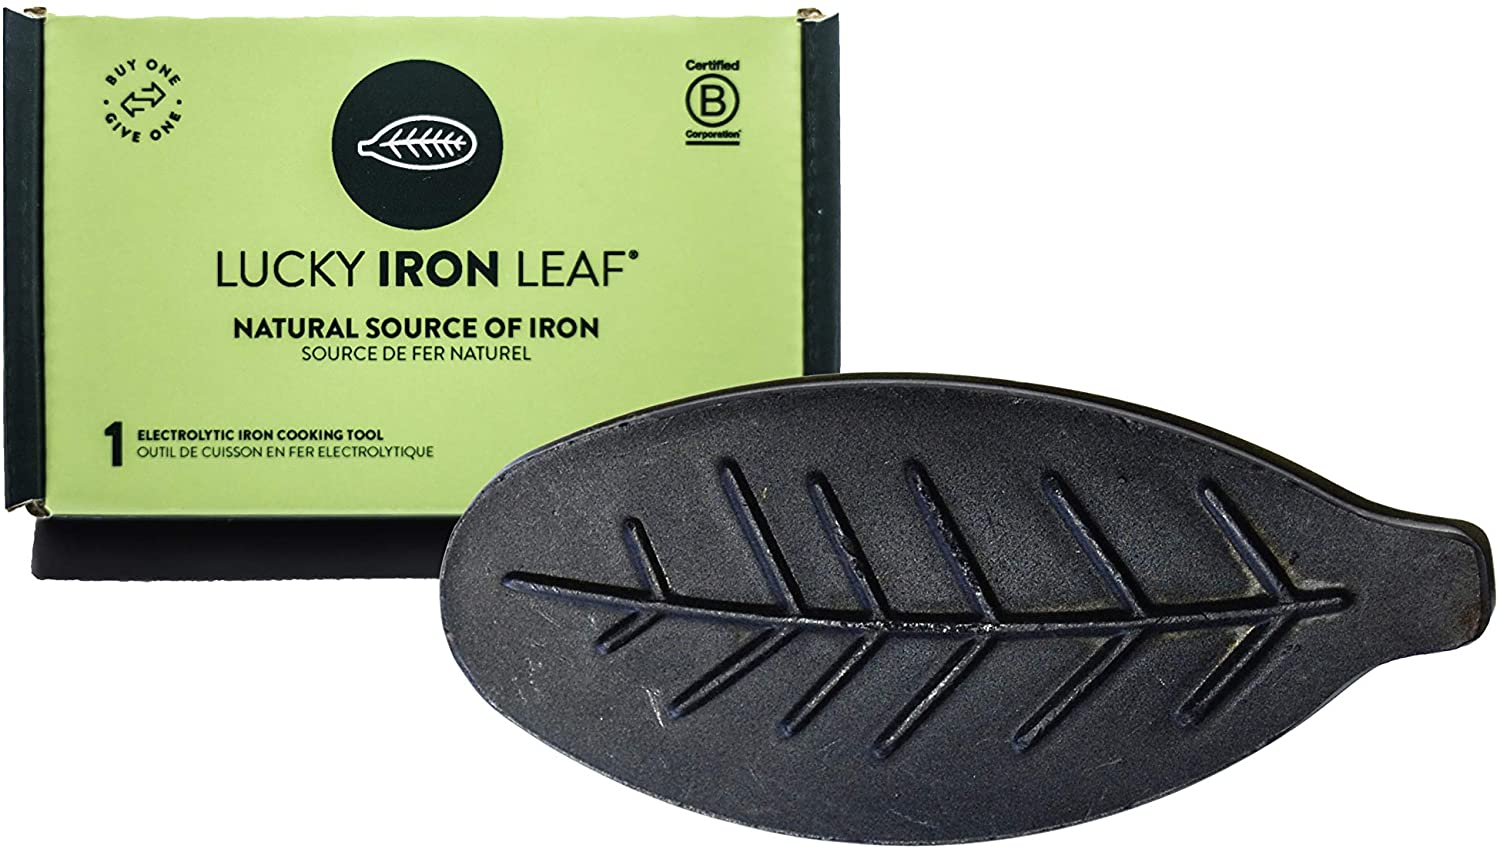 Lucky Iron Leaf, A Natural Source of Iron – A Cooking Tool to Add Iron to Food and Water, Reduce Iron Deficiency Without Supplements – Ideal for Pregnant or Menstruating Women, Athletes, Kids